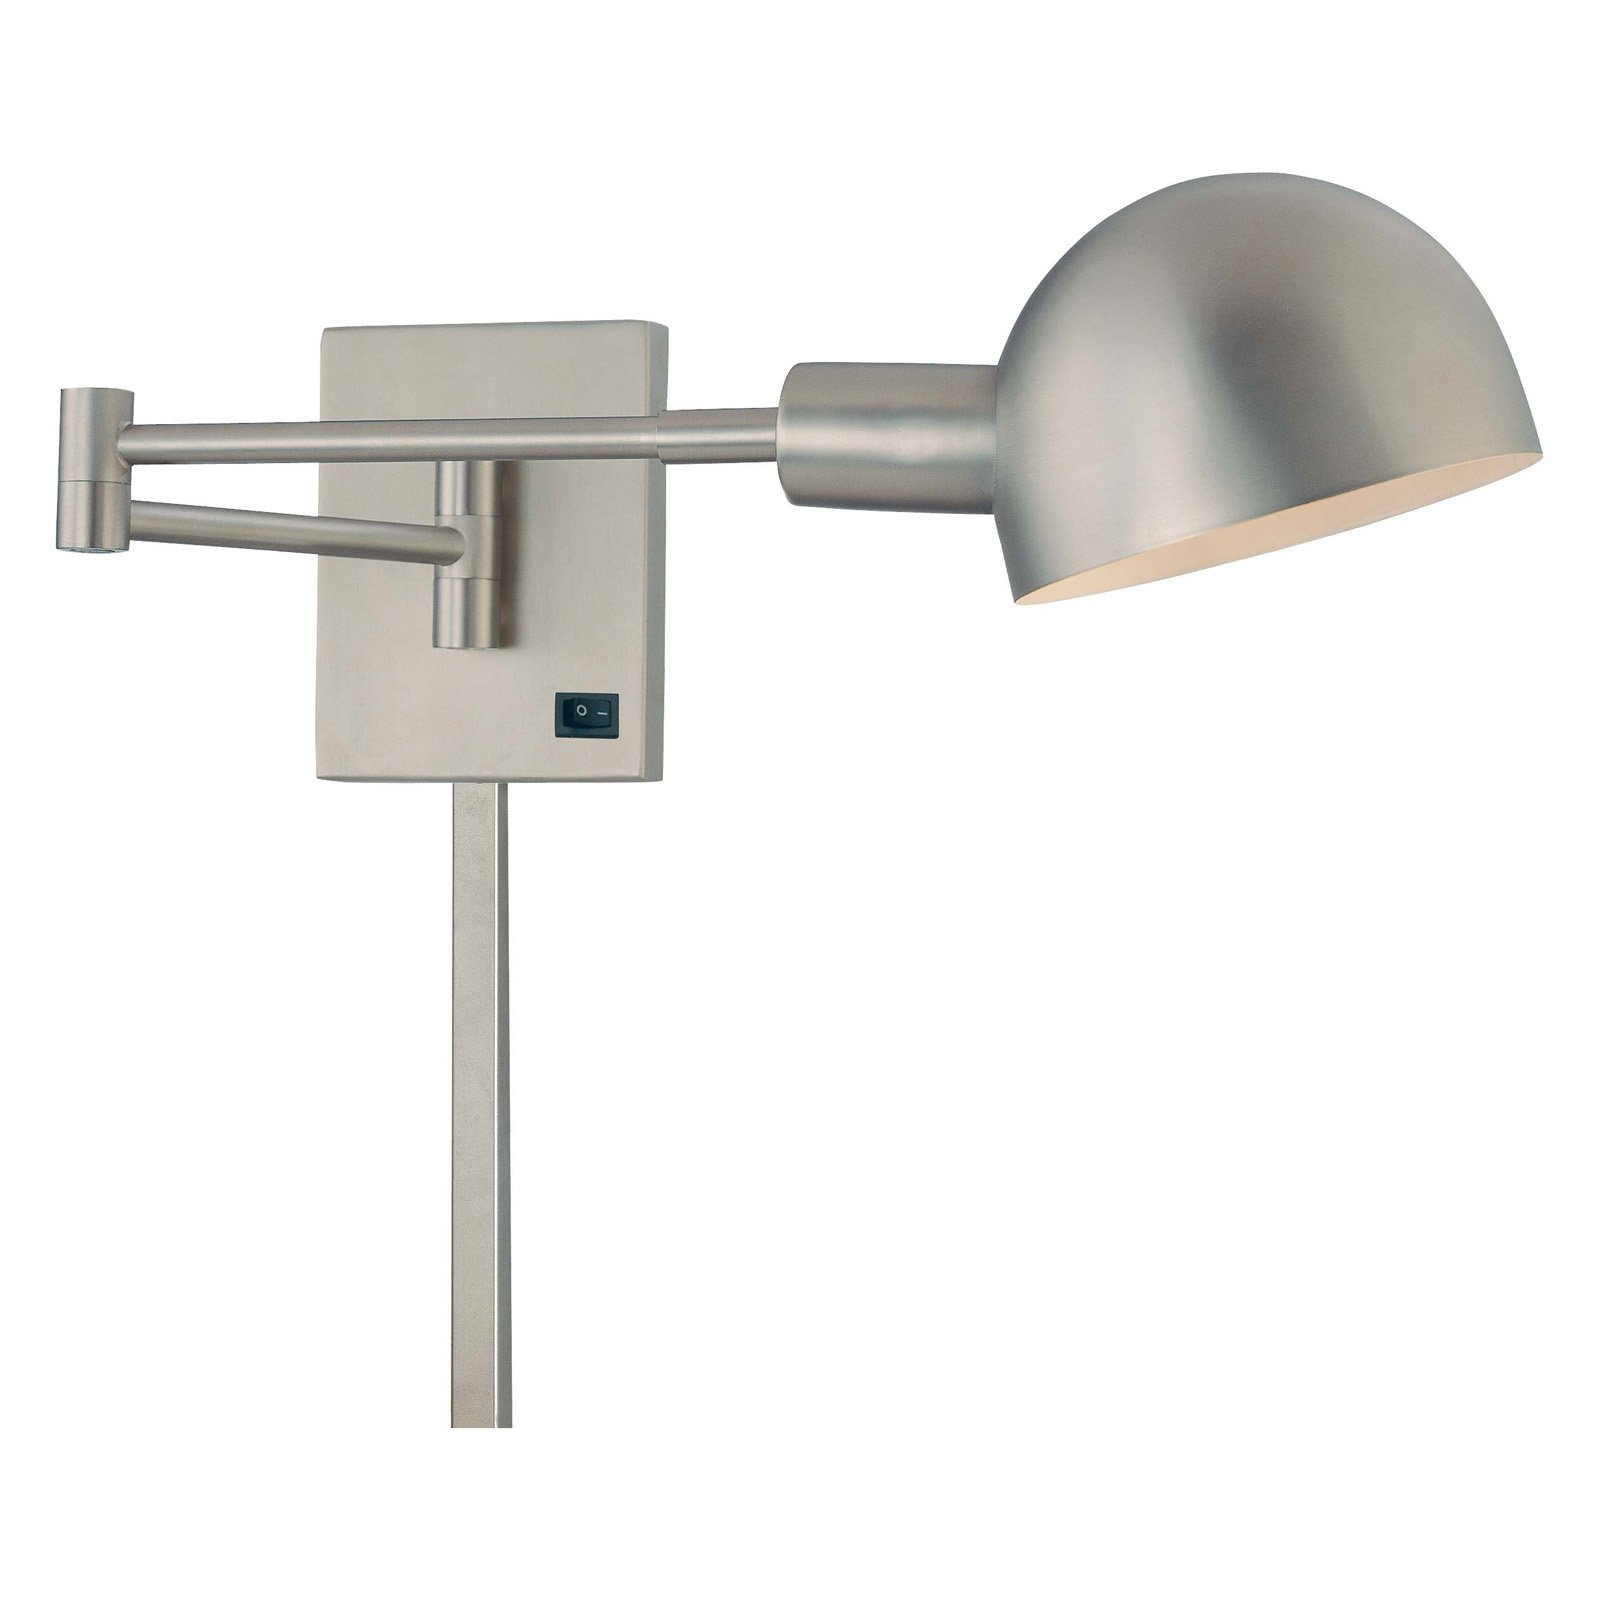 George Kovacs by Minka P600-3 1-Light Wall Lamp 4.5W in. by George Kovacs